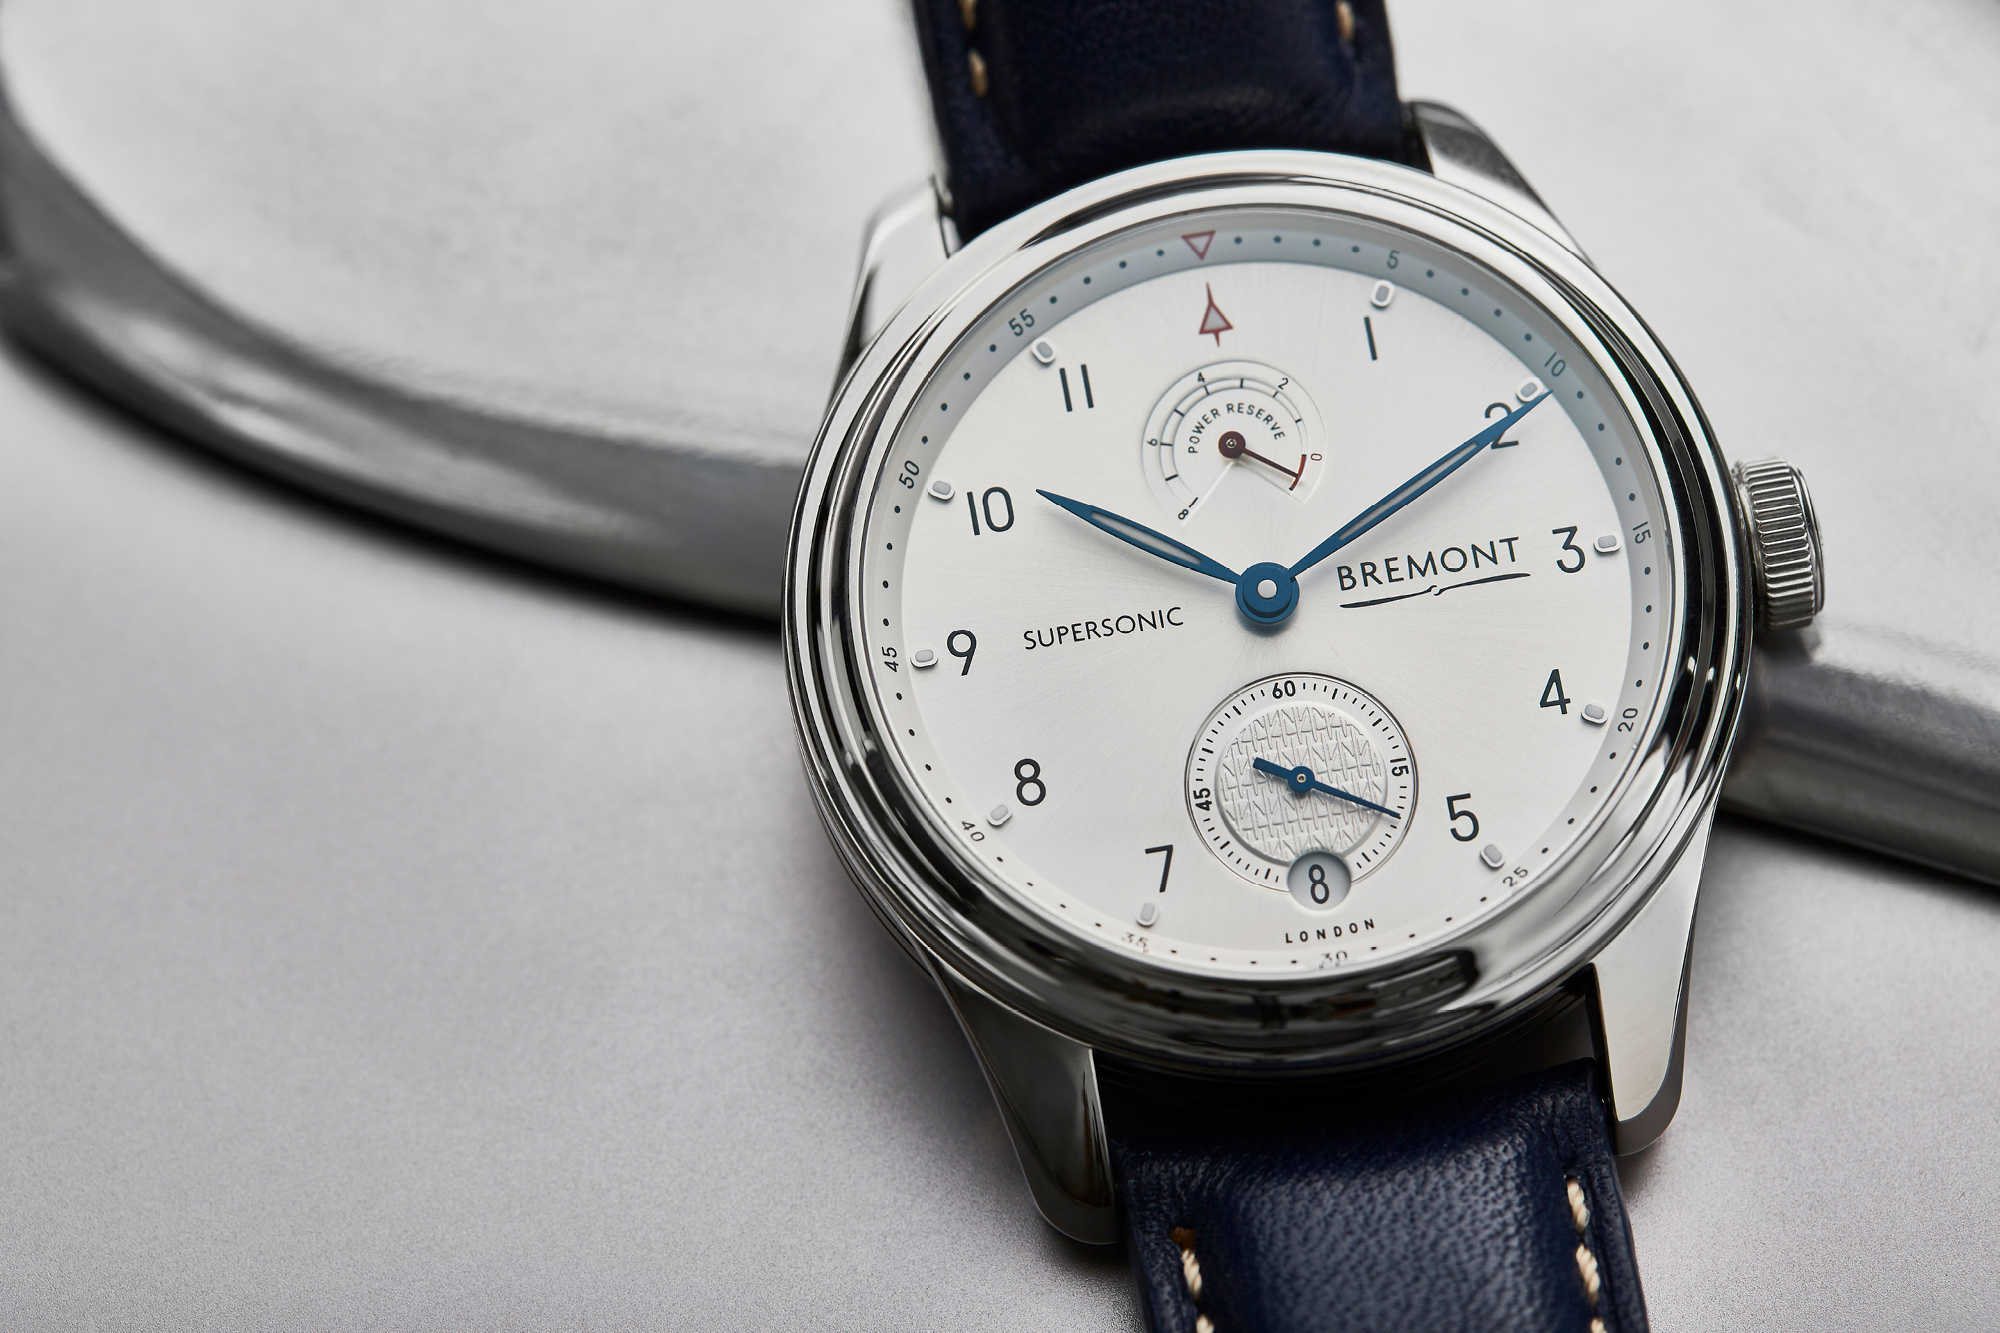 Bremont Supersonic limited-edition timepiece